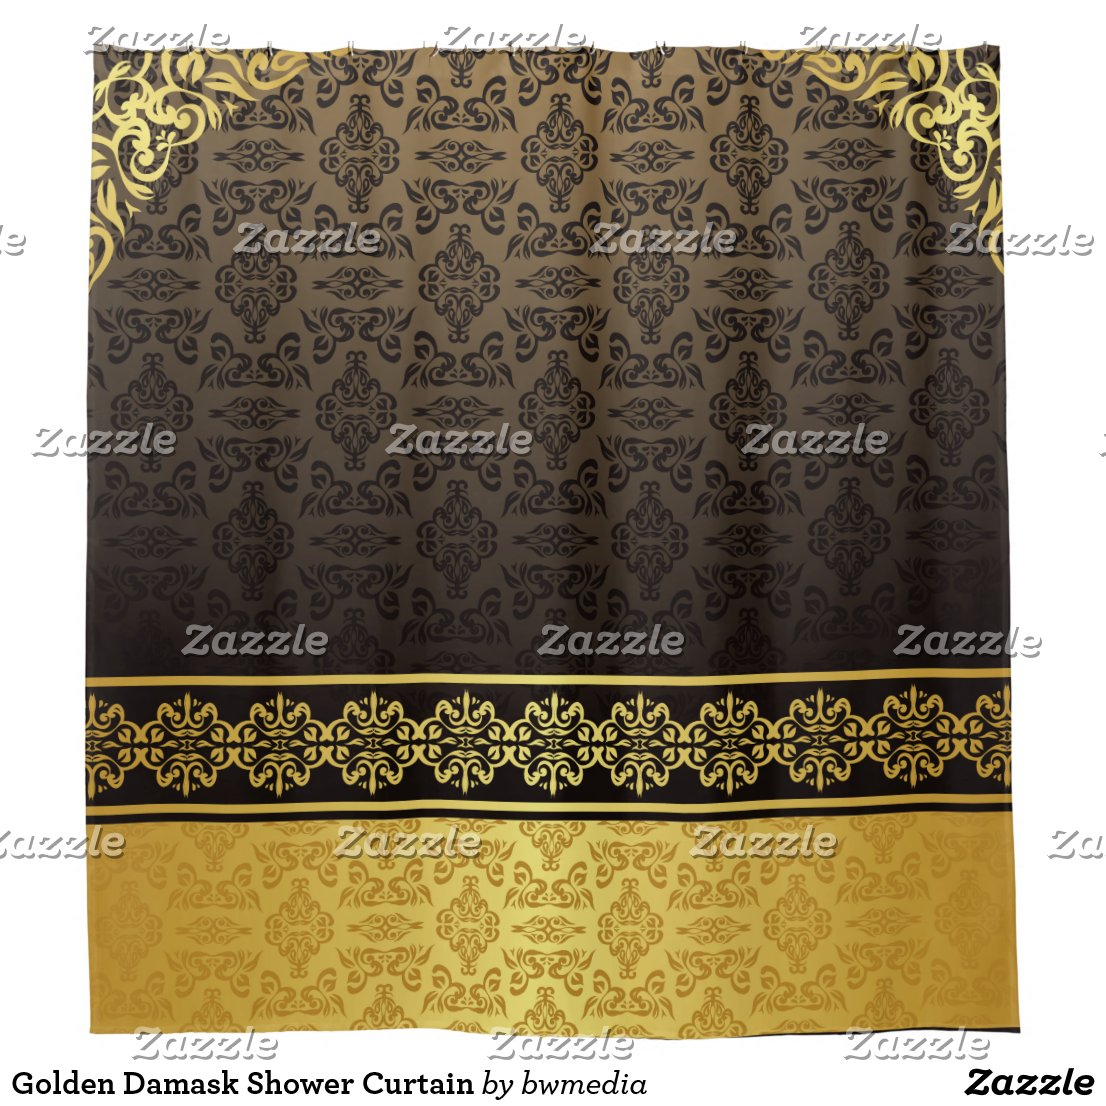 Golden Damask Shower Curtain